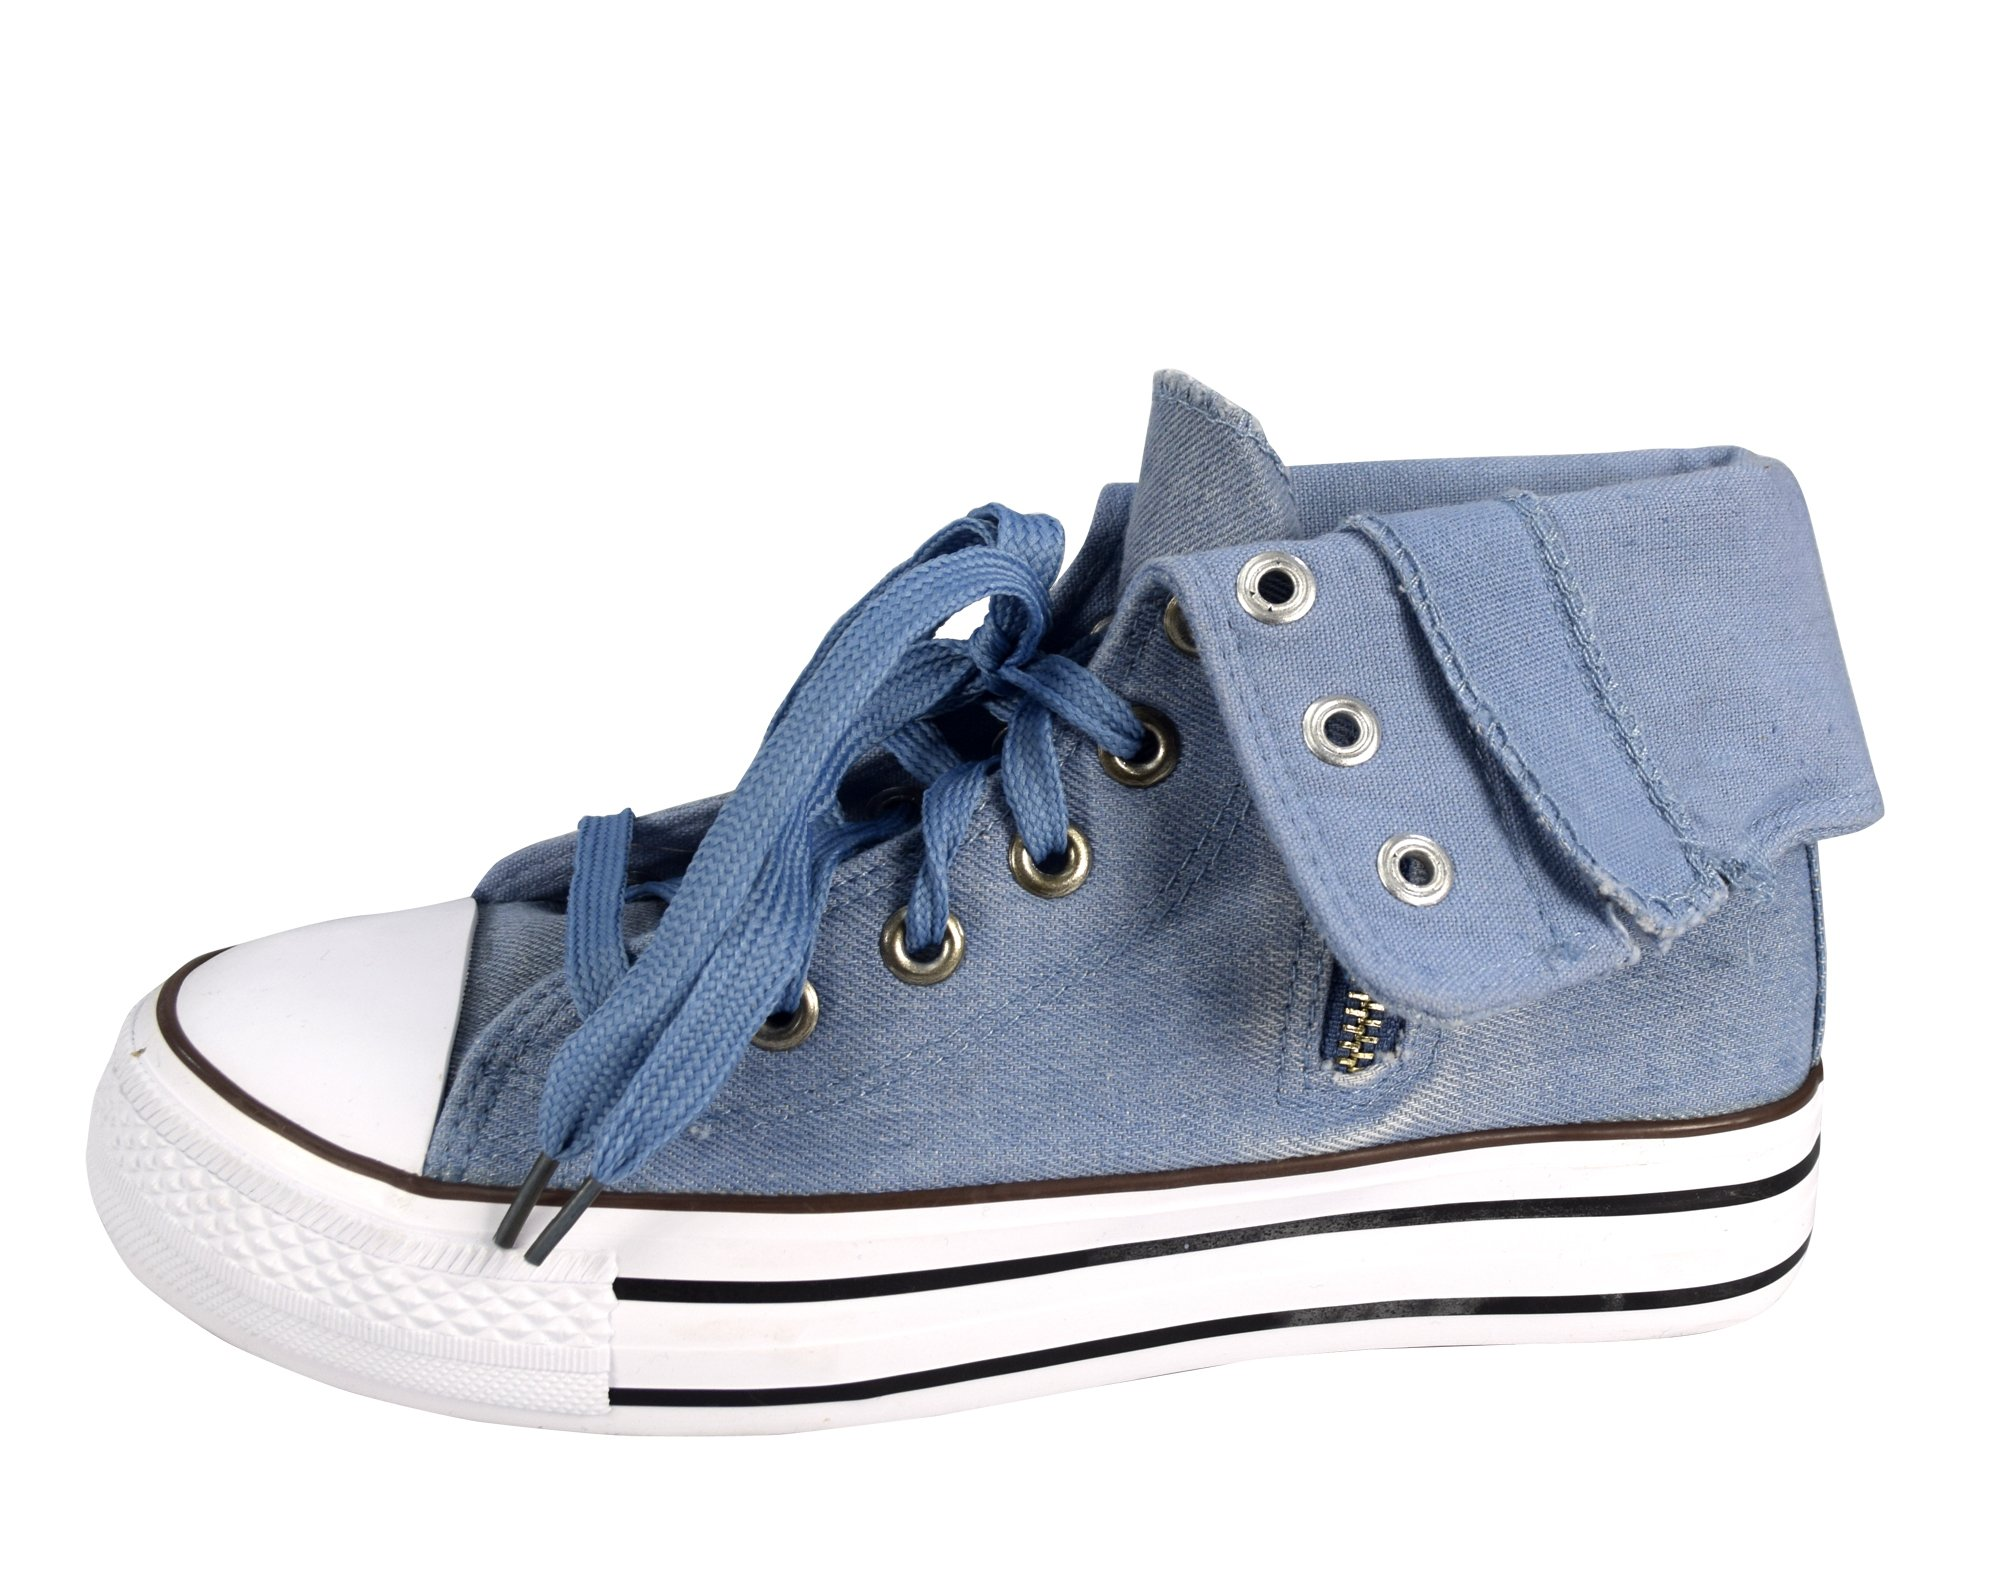 Peach Couture Taylor Fold Over Side Zipper Canvas High Top Sneaker Shoes Light Blue, 10 by Peach Couture (Image #1)